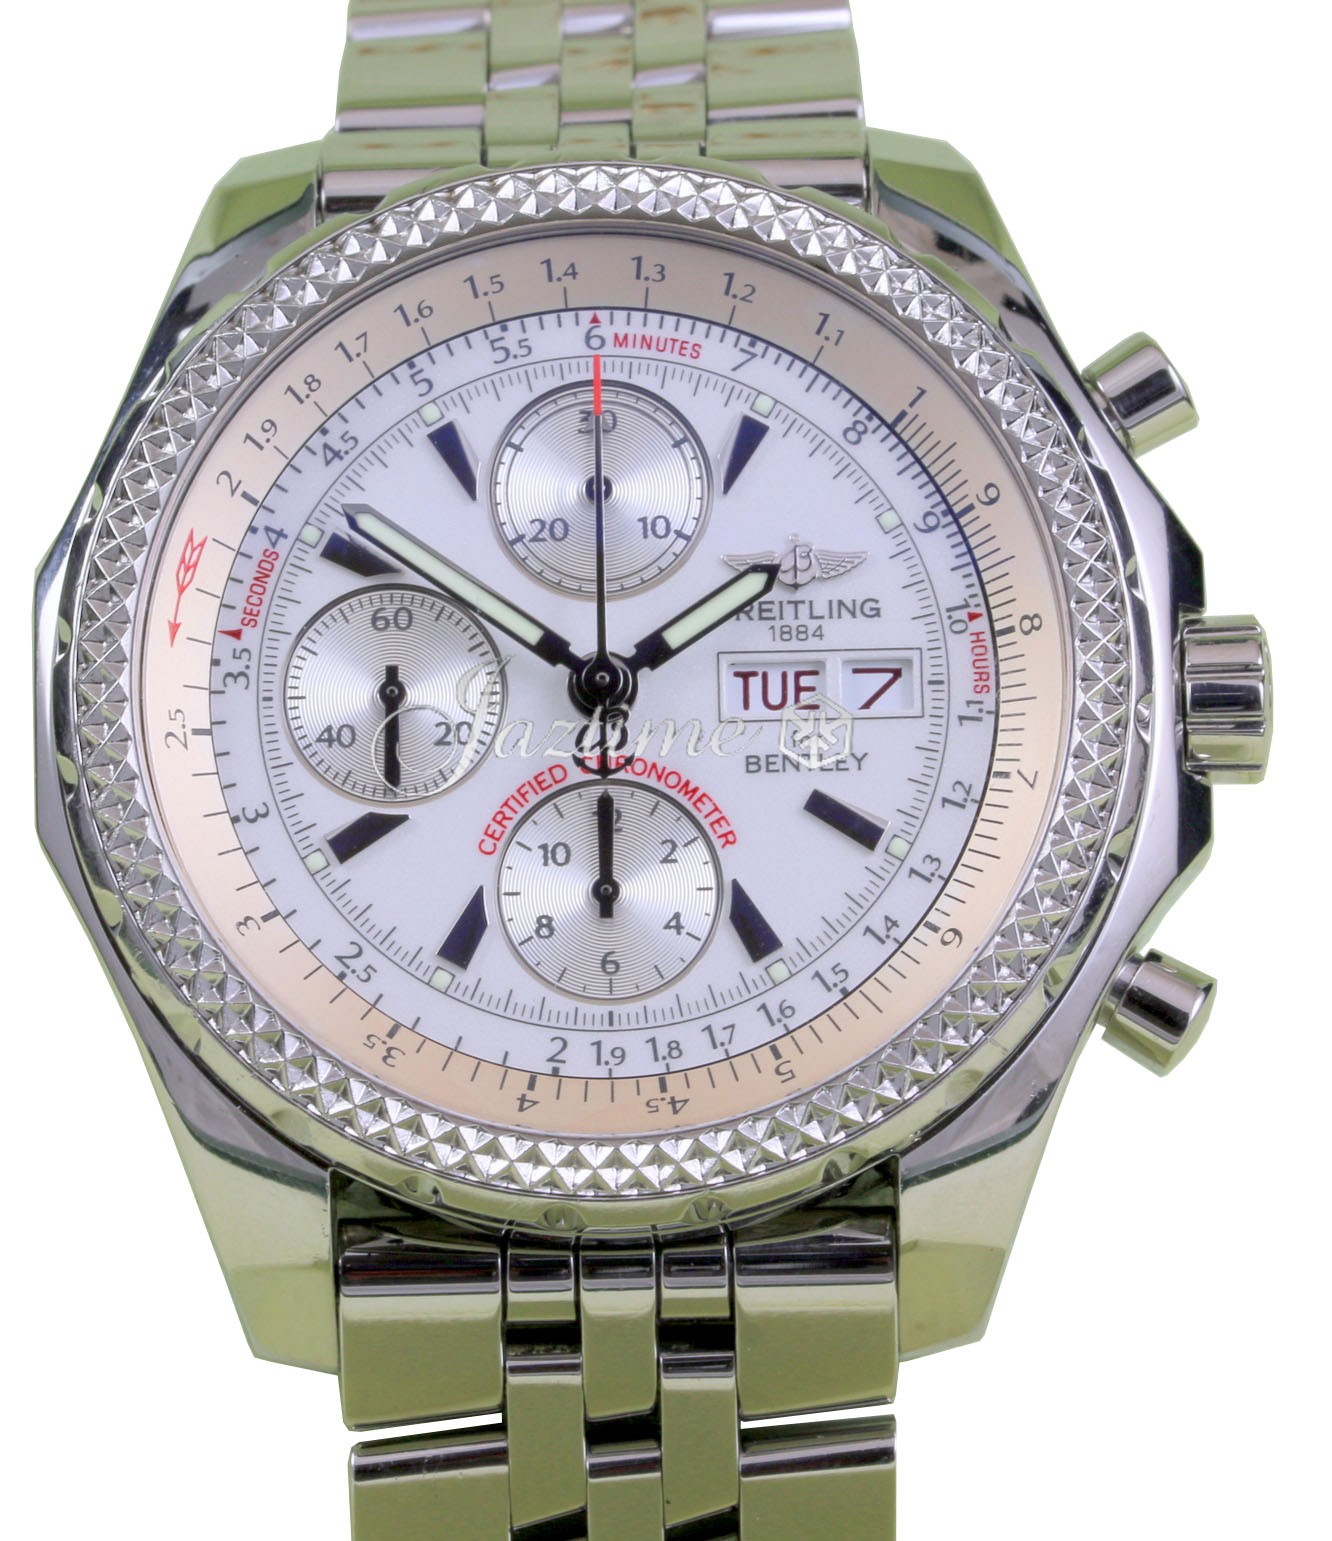 Breitling Stainless Steel Bentley Automatic Wristwatch Ref: Breitling Bentley GT A13362 Stainless Steel Chronograph